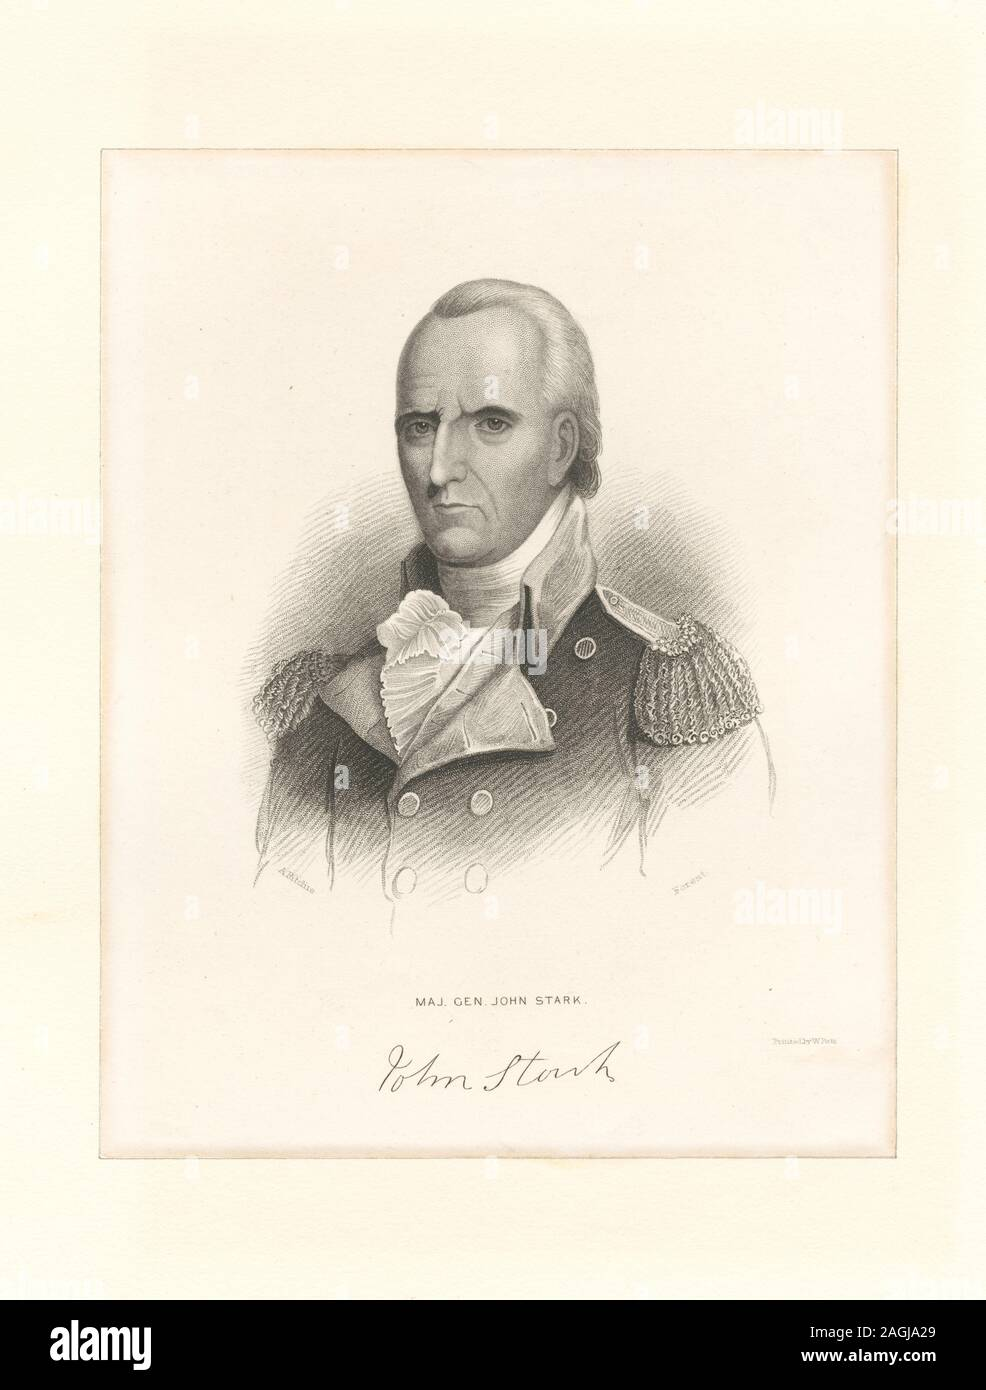 Printmakers include Henry Bryan Hall and Luigi Schiavonetti. EM8523 Statement of responsibility : Forest; Maj. Gen. John Stark Stock Photo